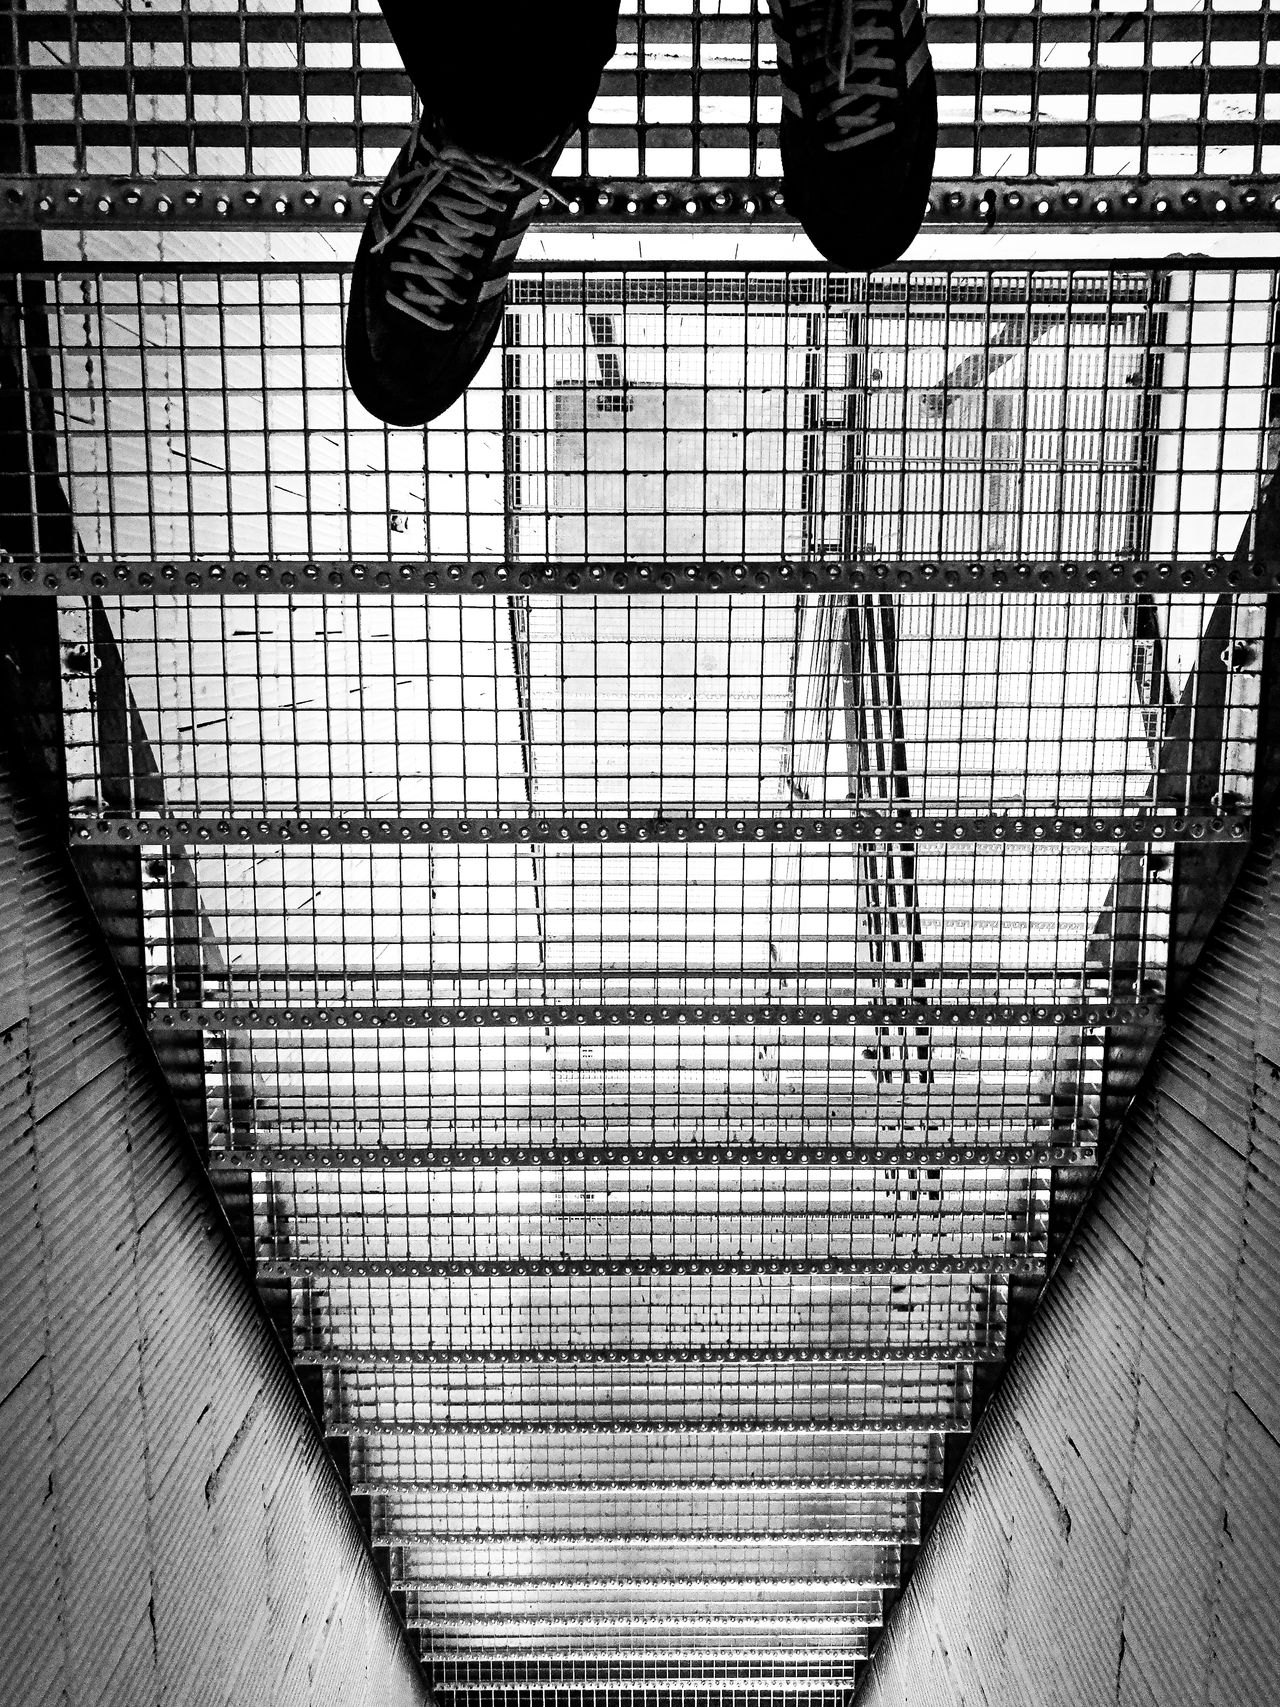 Abyss Adidas Adult Ascend Blackandwhite Day Human Leg Indoors  Low Section Men One Man Only One Person People Real People Shoes Stairs Steel Stairs